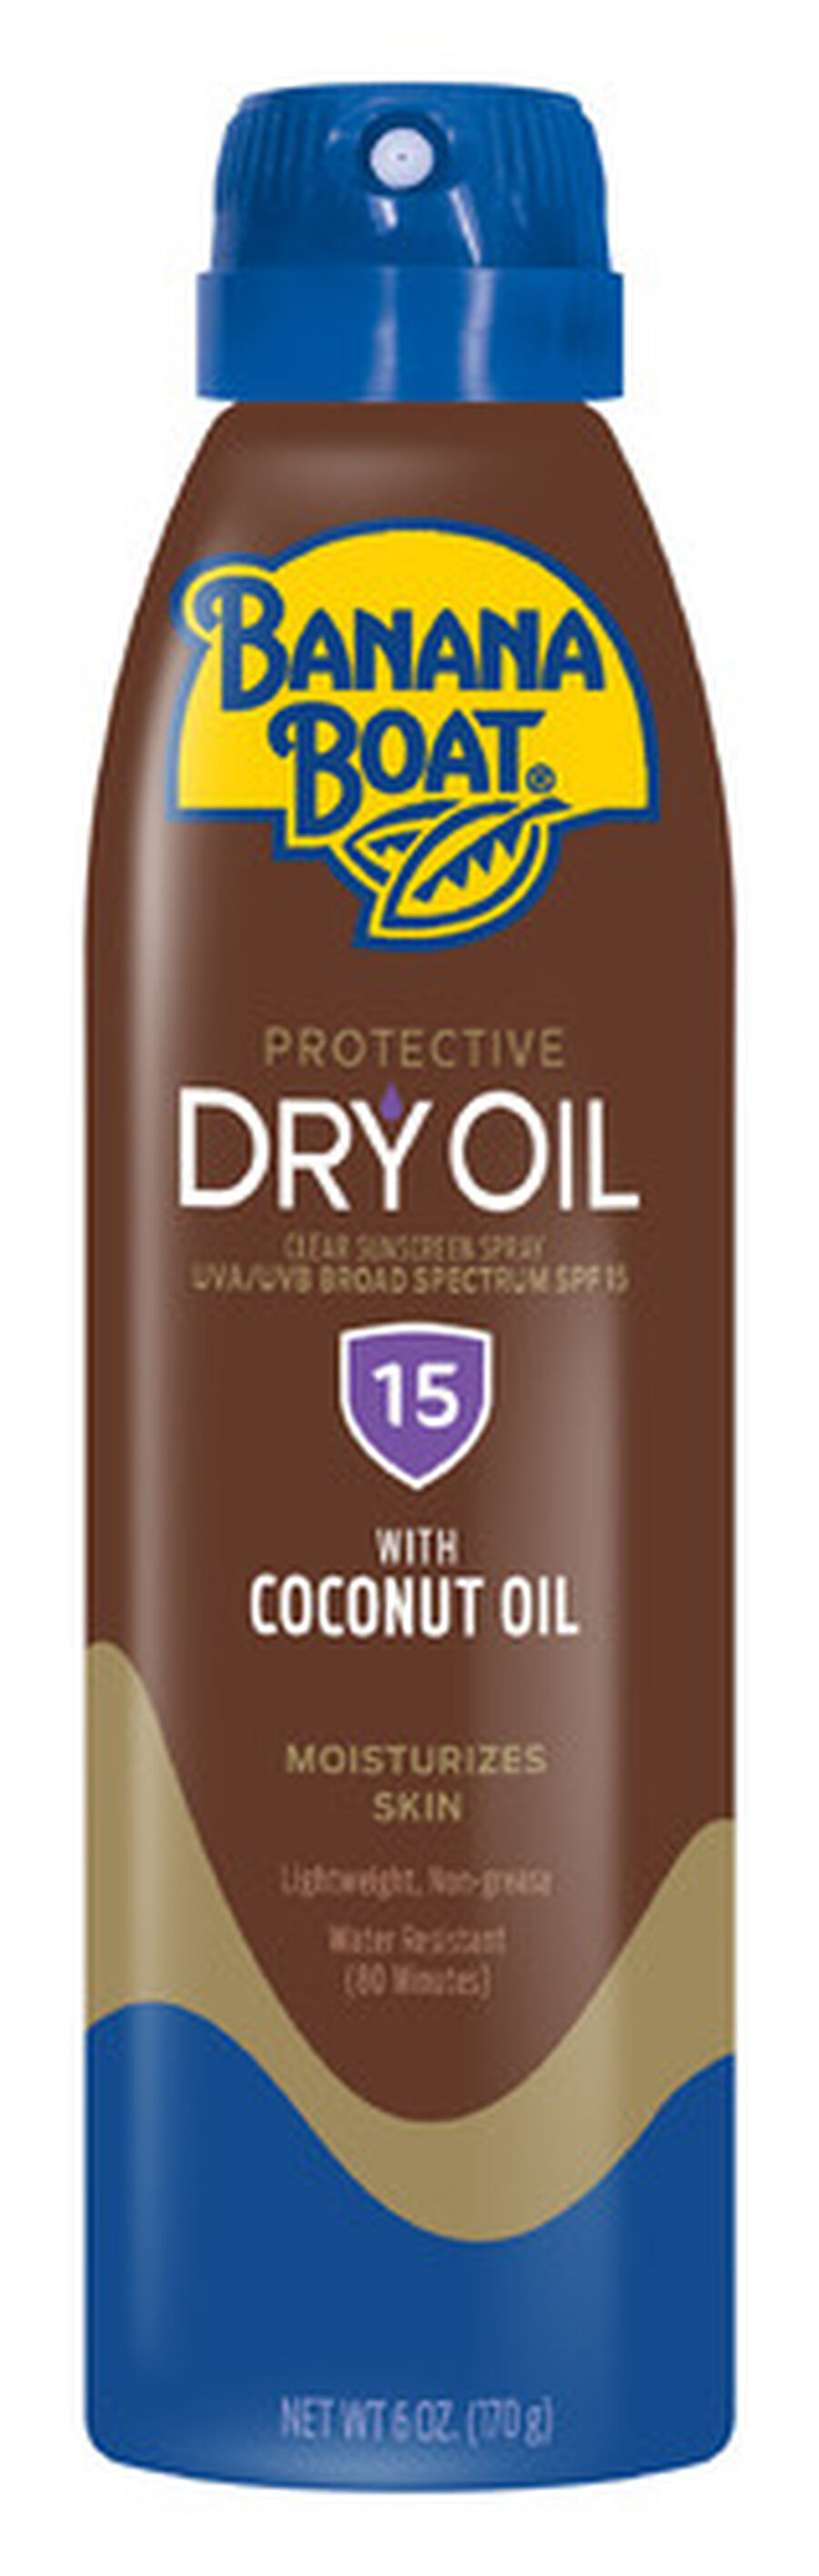 Banana Boat Dry Oil Clear Sunscreen Spray SPF 15, 6oz., , large image number 0